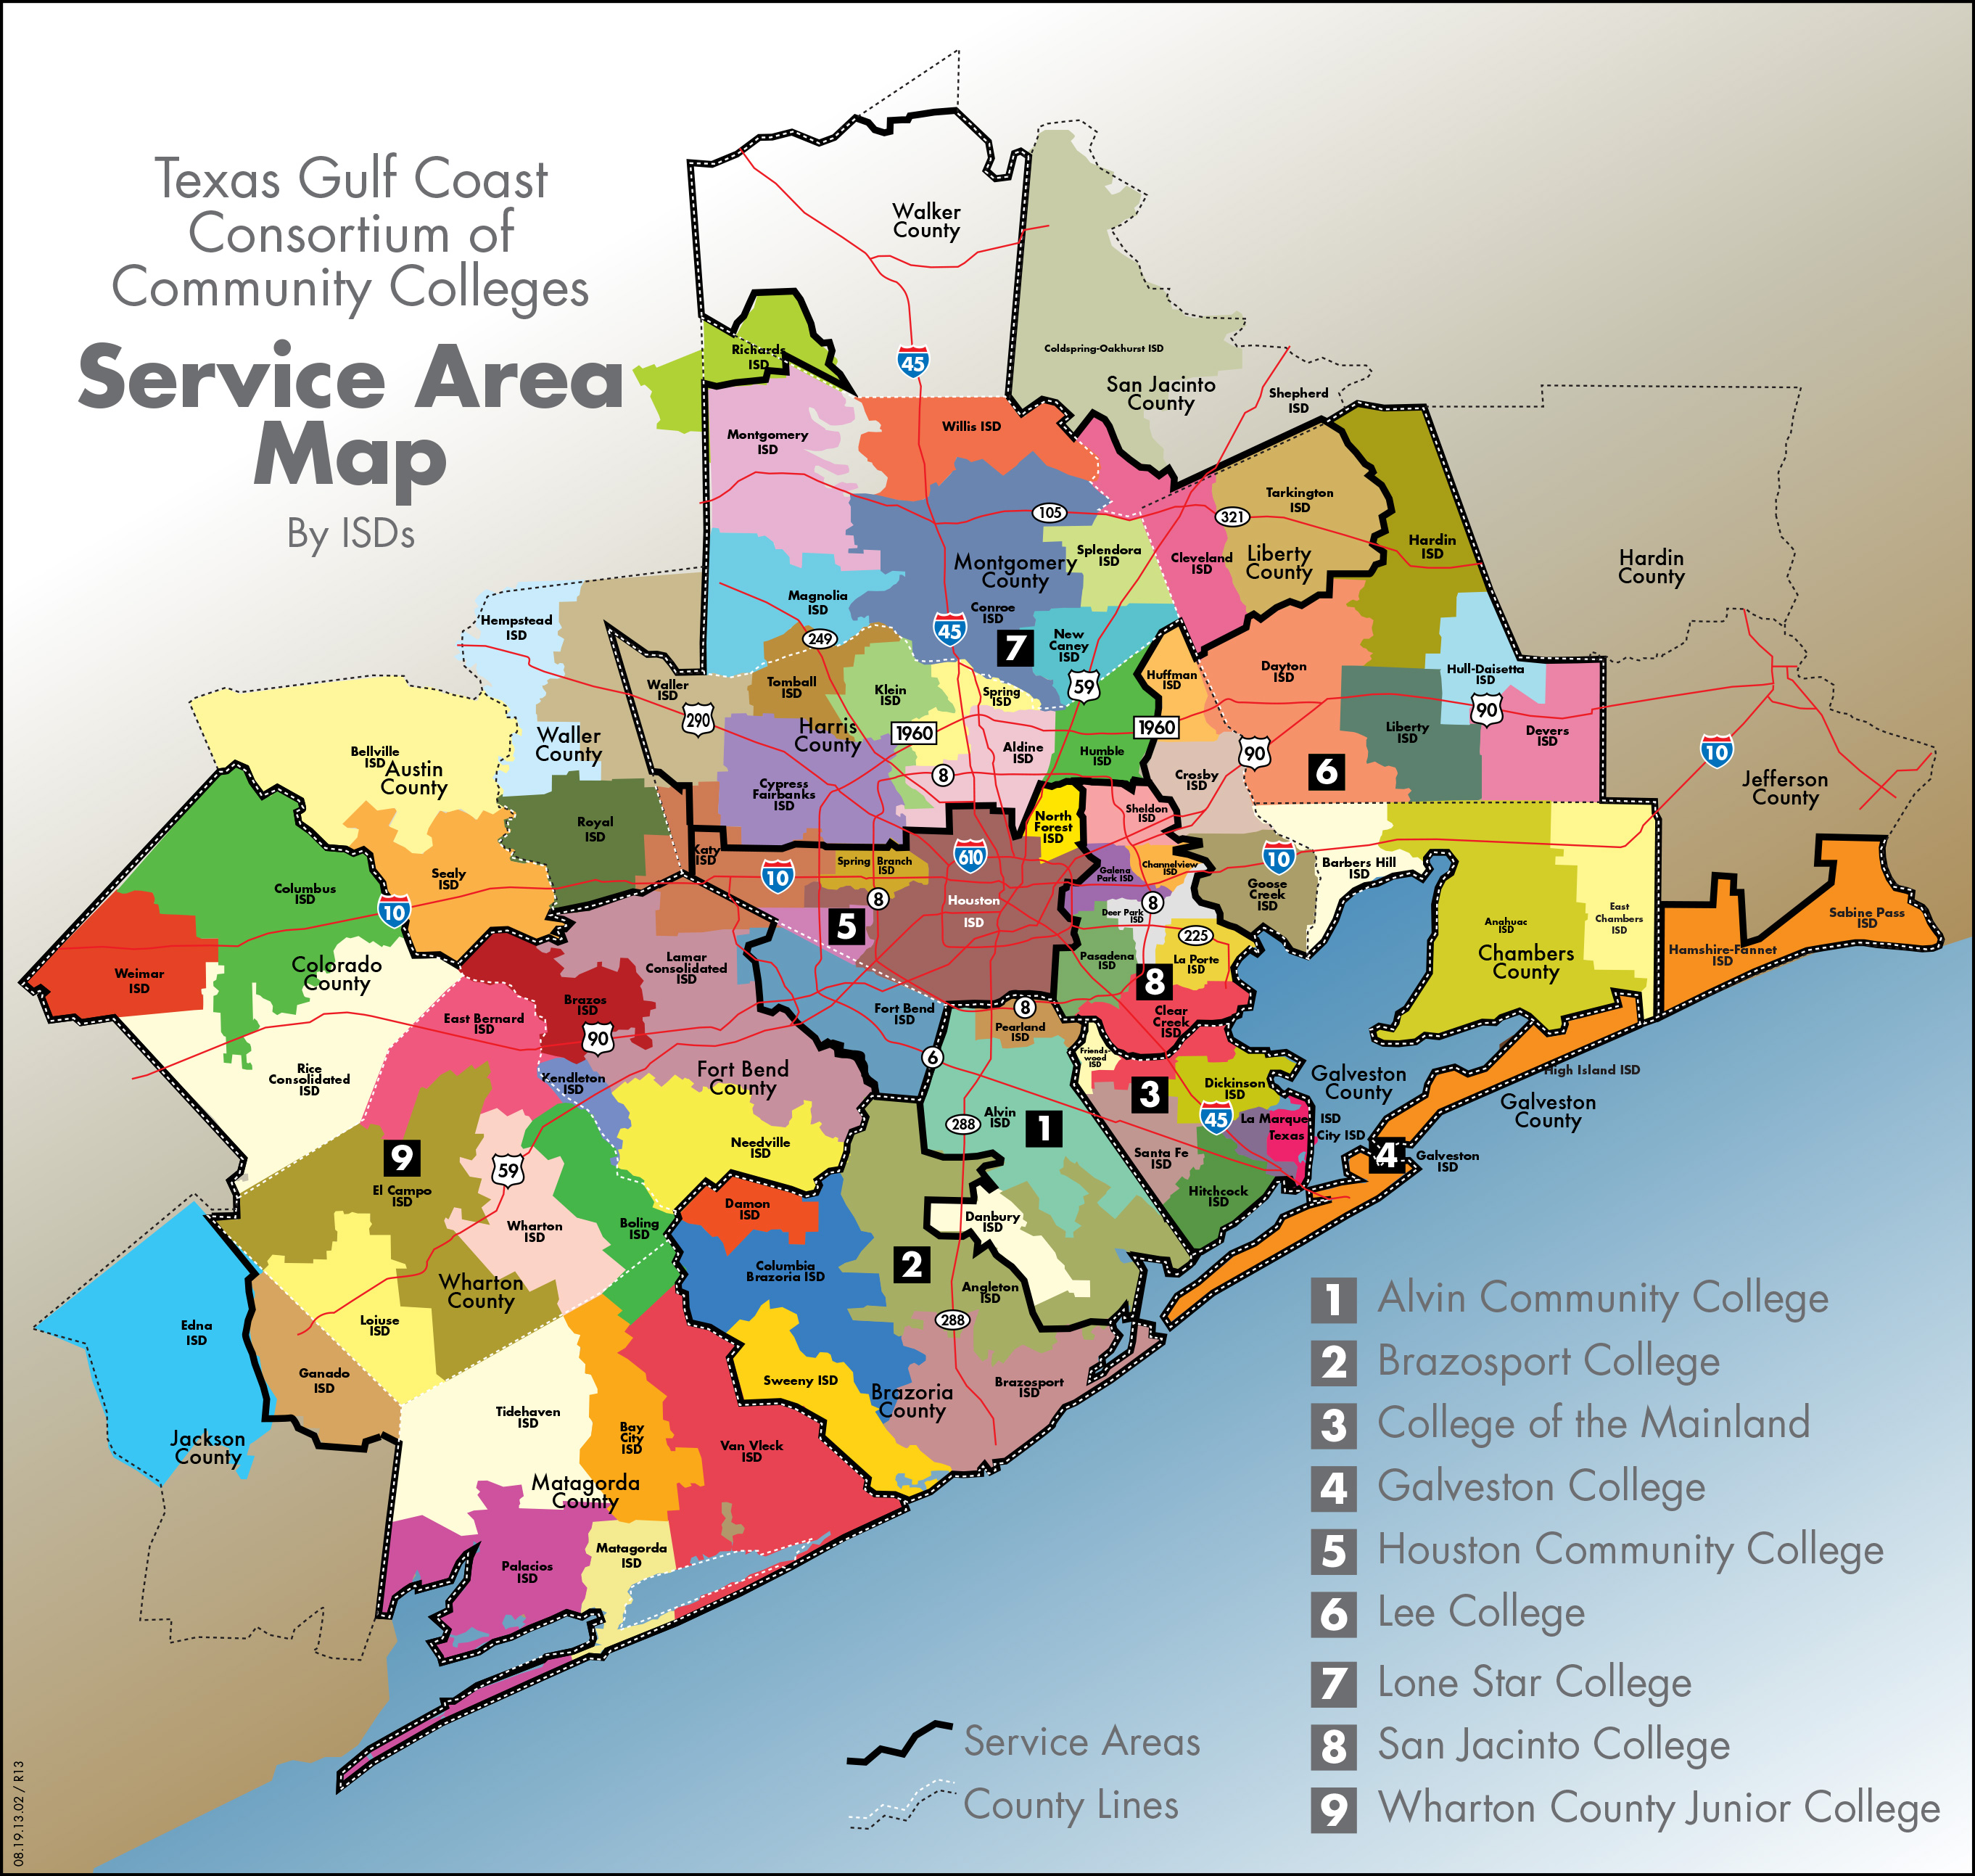 Map of Community College Service Areas by ISD